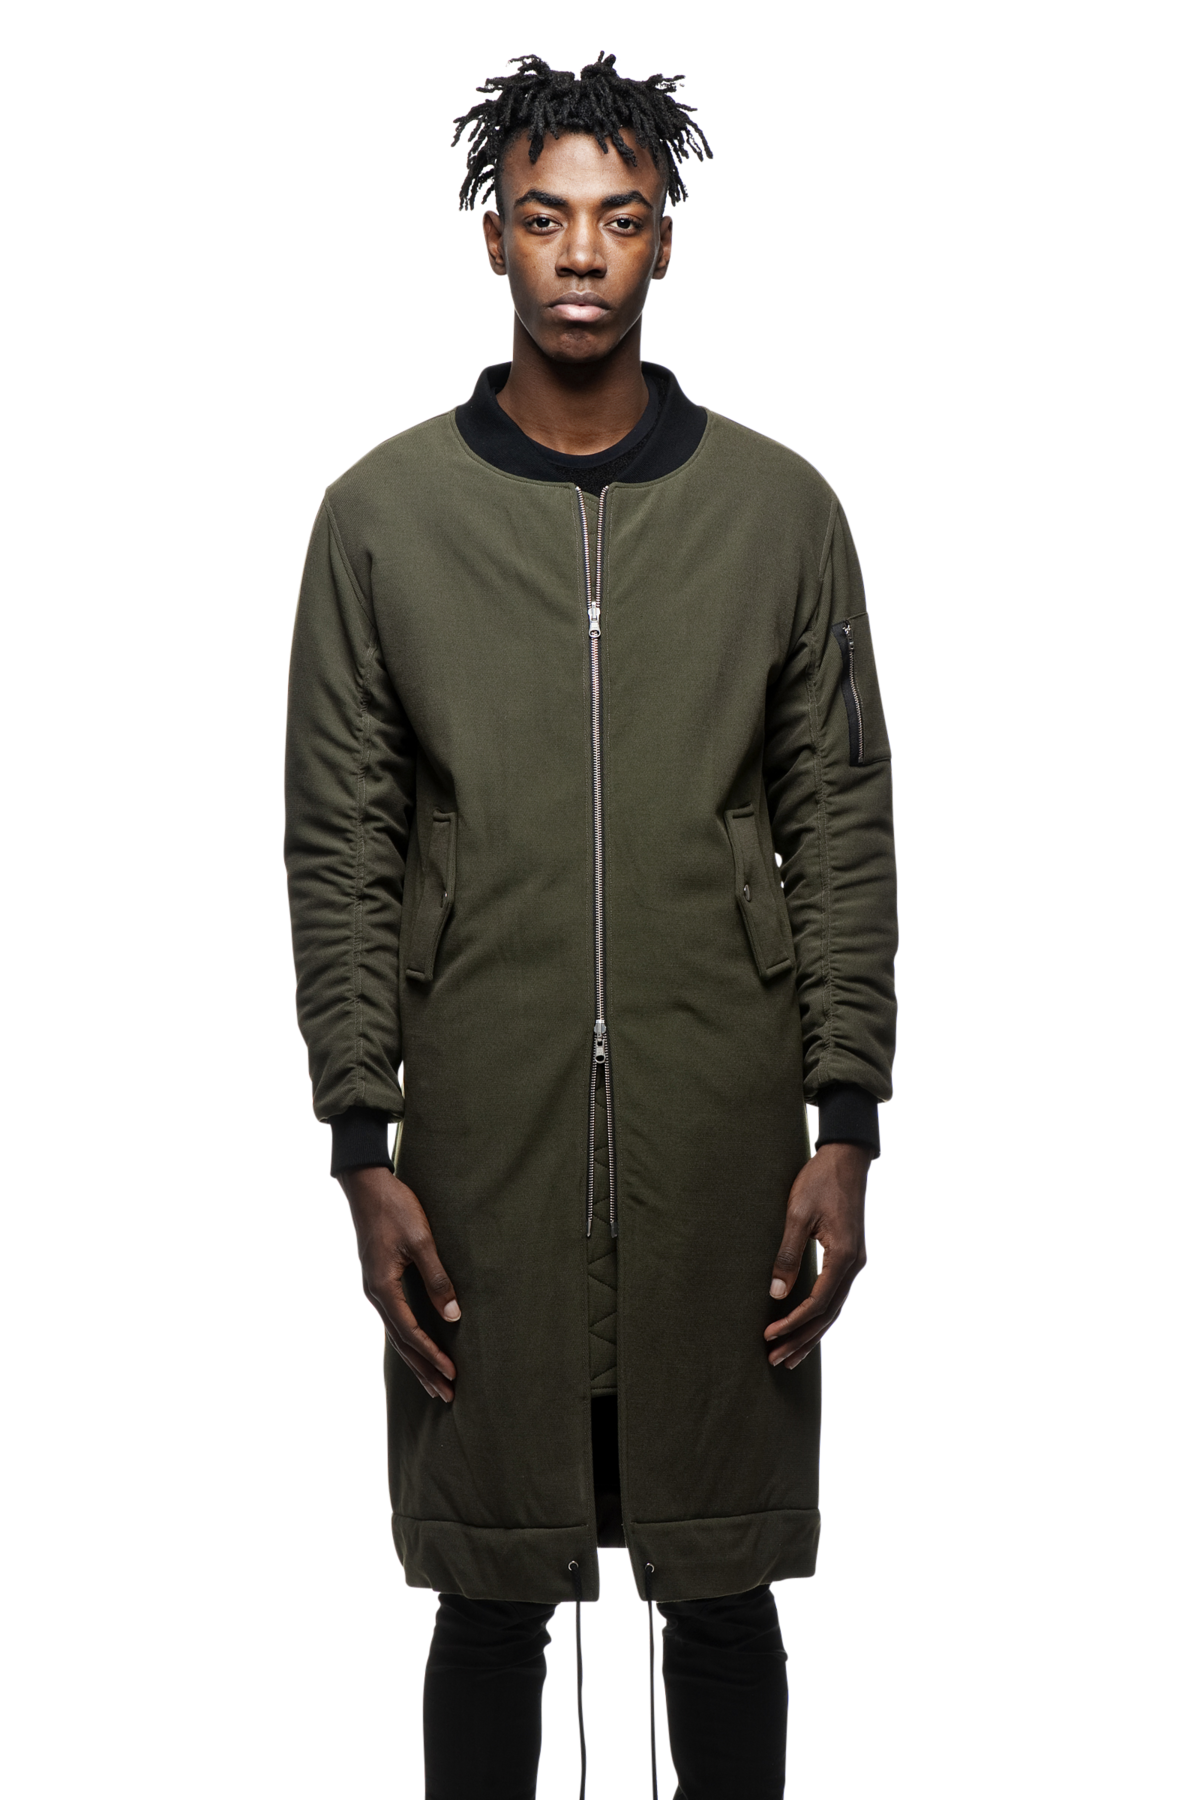 The Reversible Bomber features an elongated lightweight